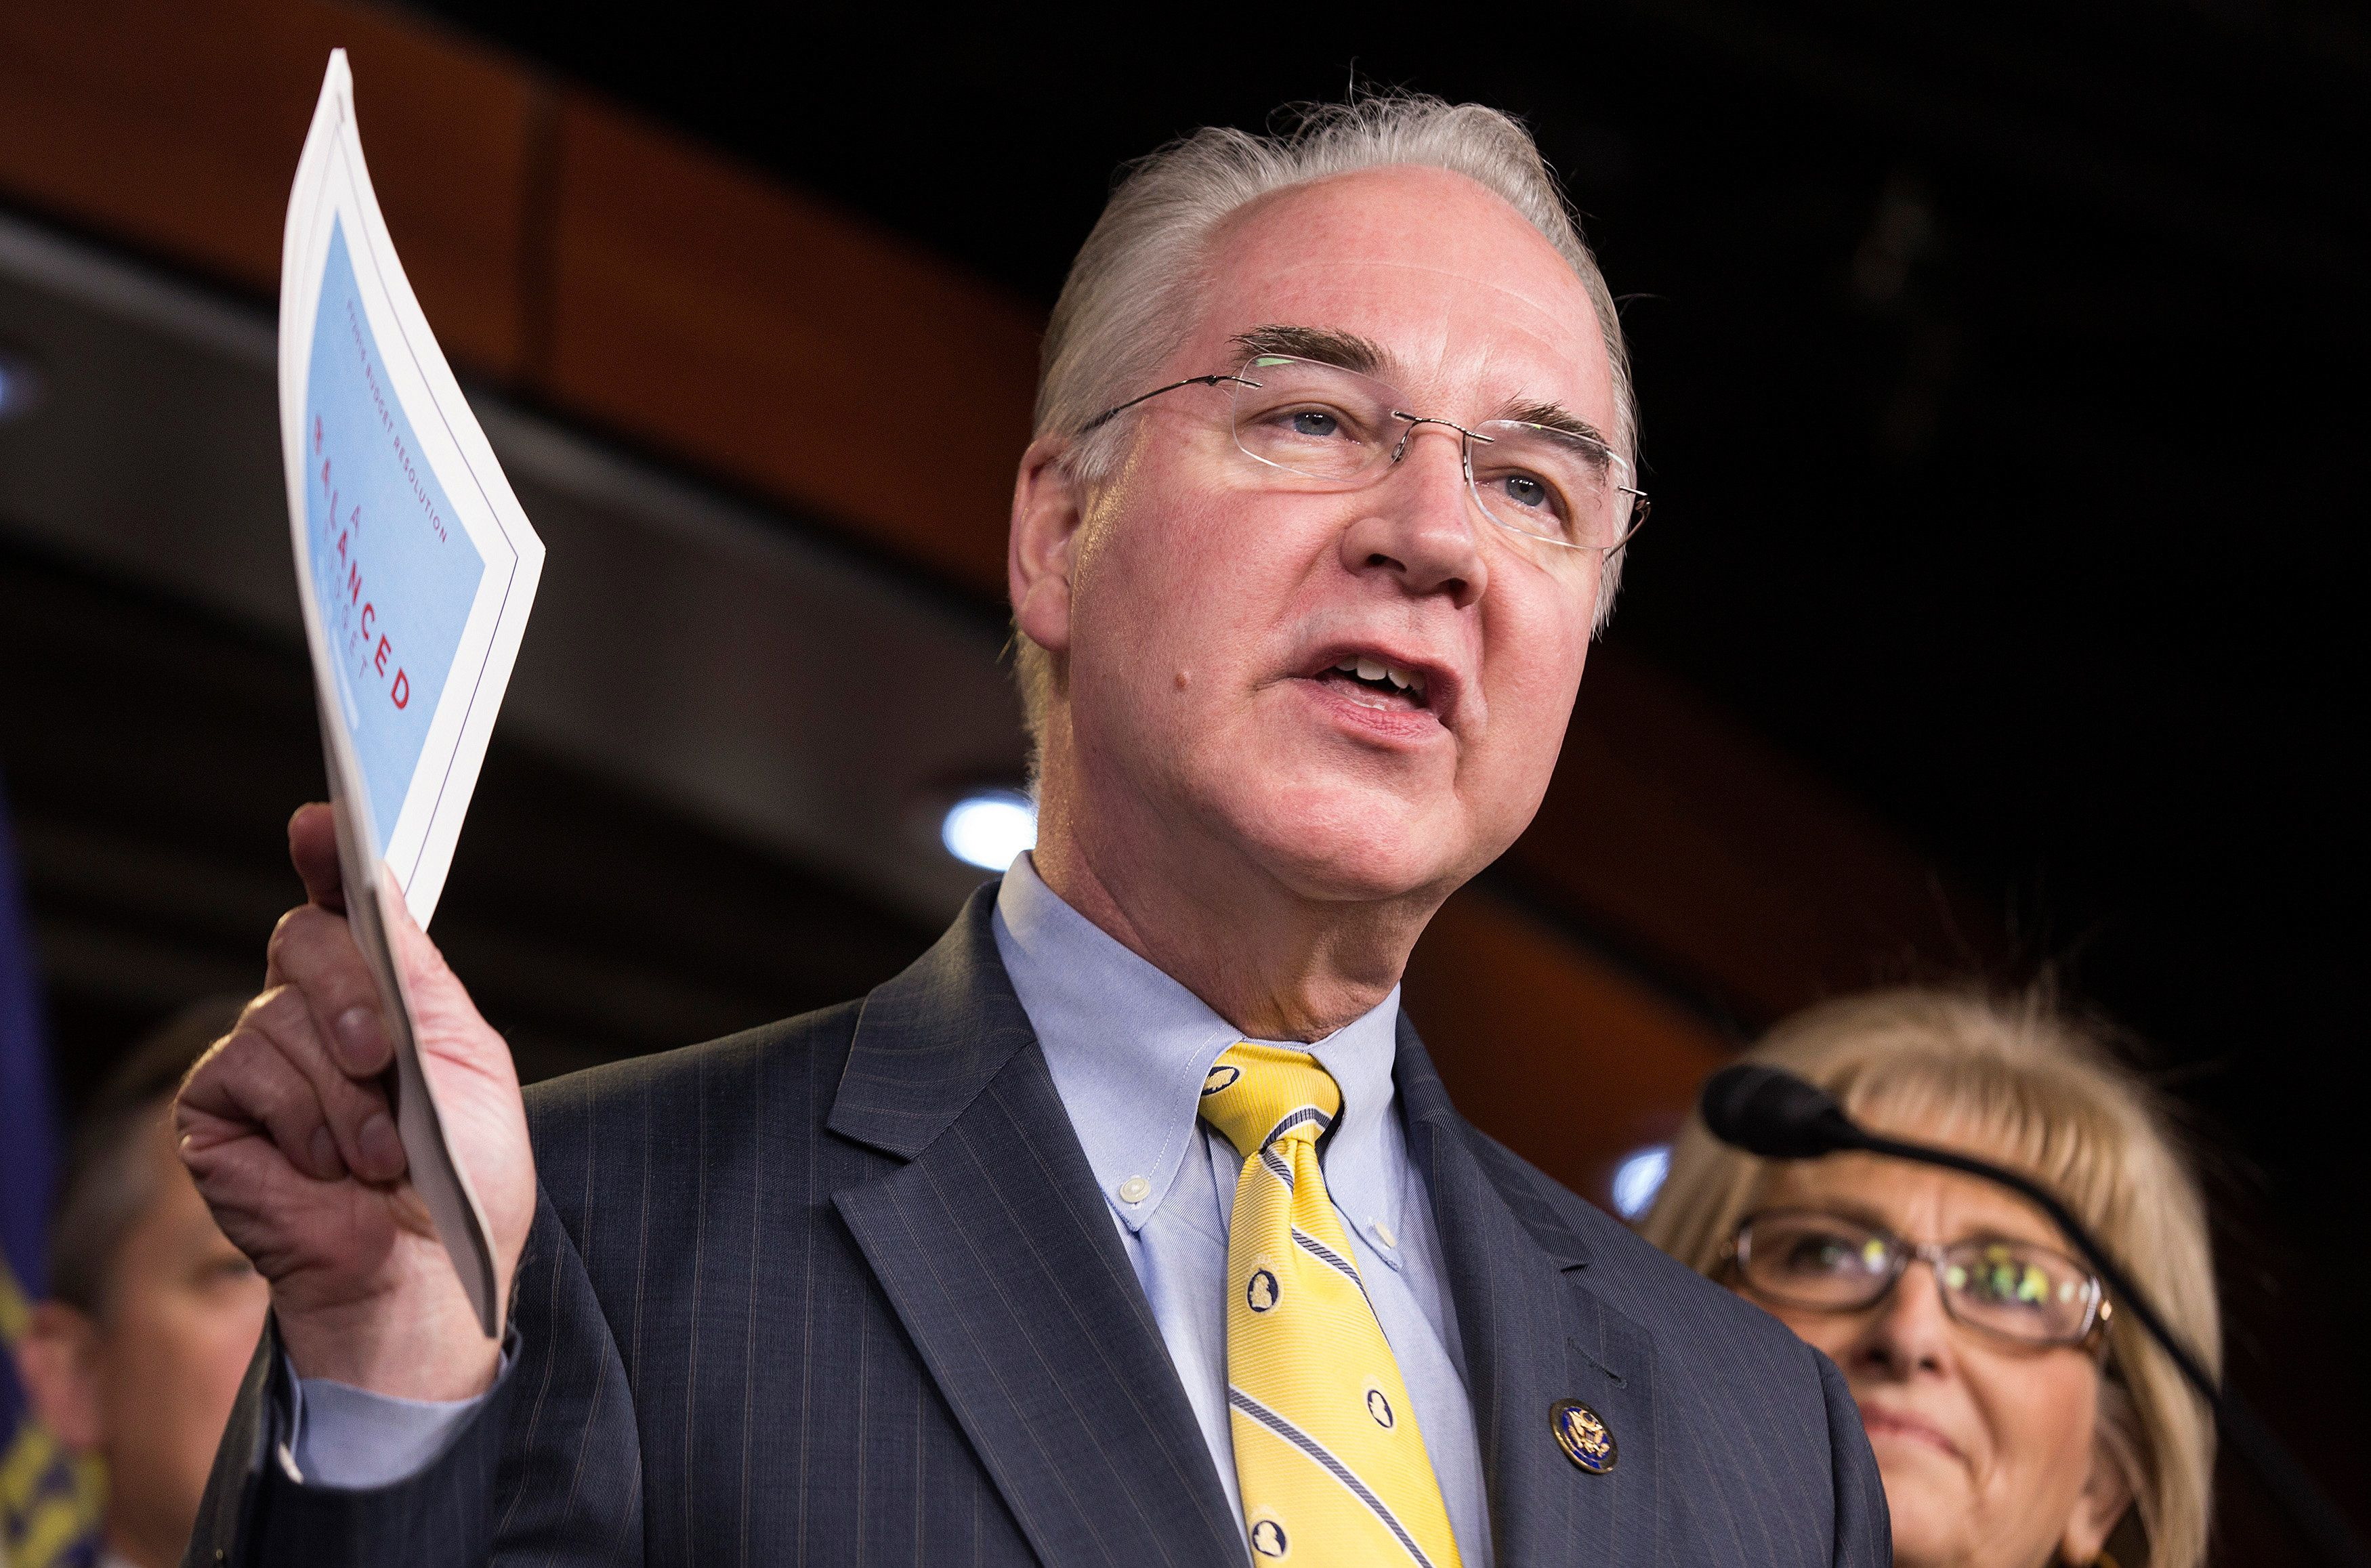 Rep.Dr. Tom Price,nominated to head up the U.S. Department of Health and Human Services, represents a danger to v